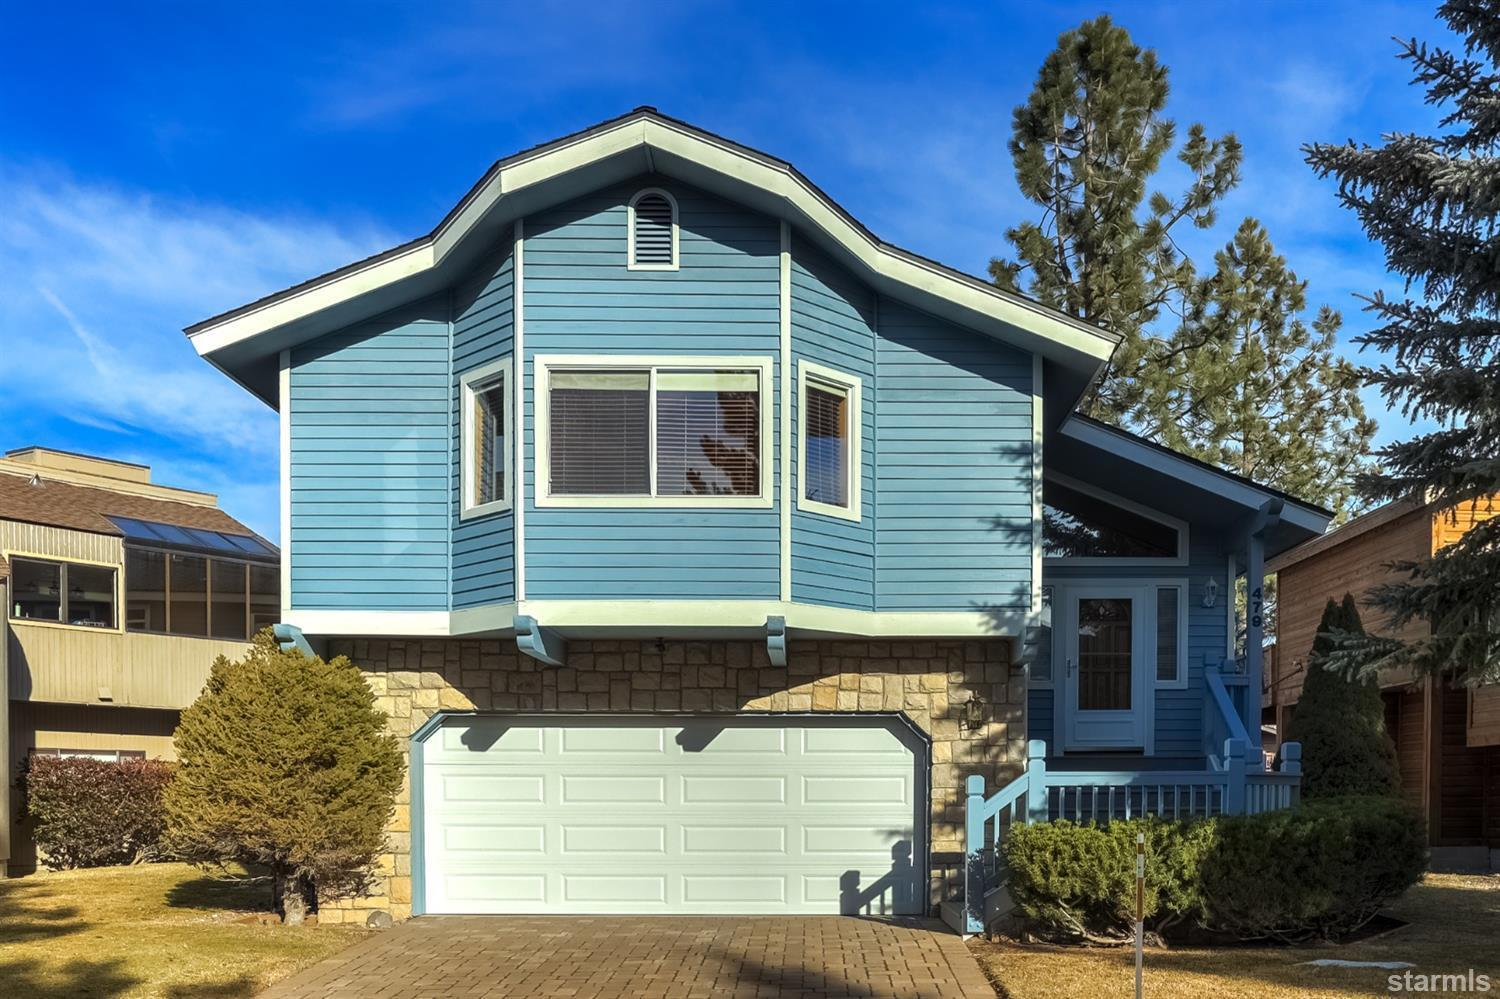 479 Lido Drive, 133763, South Lake Tahoe, Single-Family Home,  for sale, Brandie Griffith, Realty World - Lake Tahoe